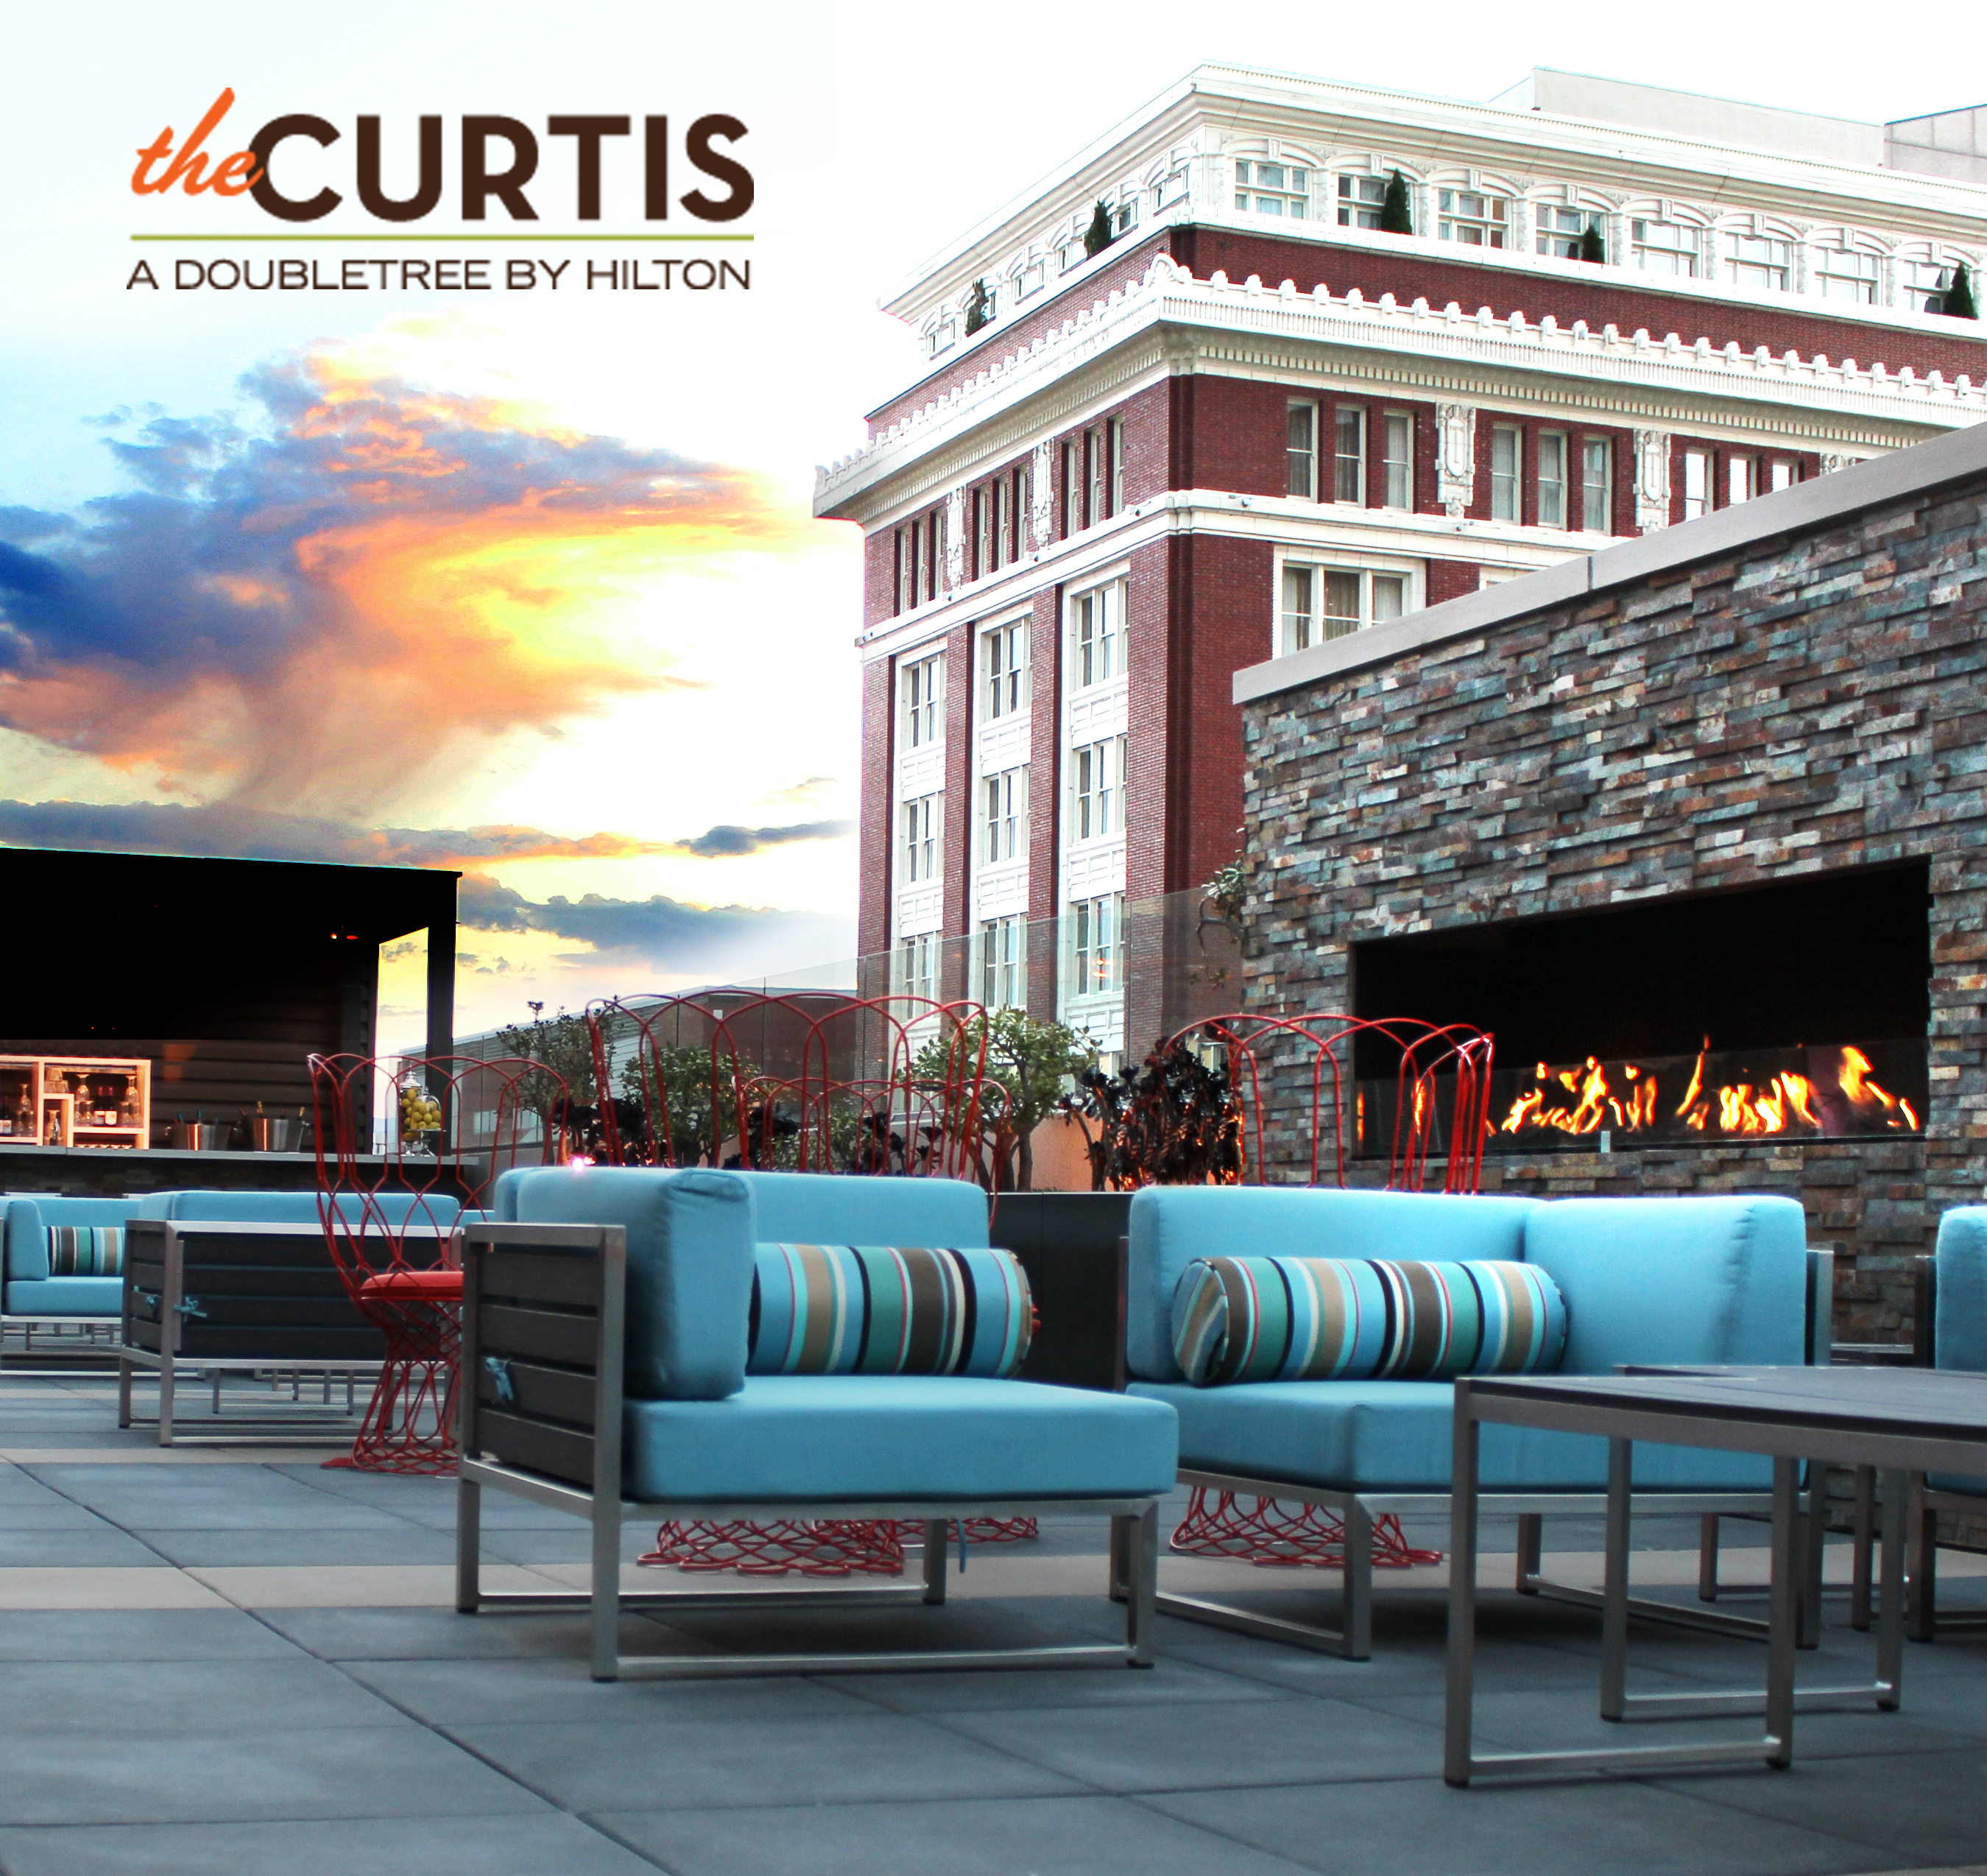 theCURTIS -a Doubletree by Hilton event space in denver